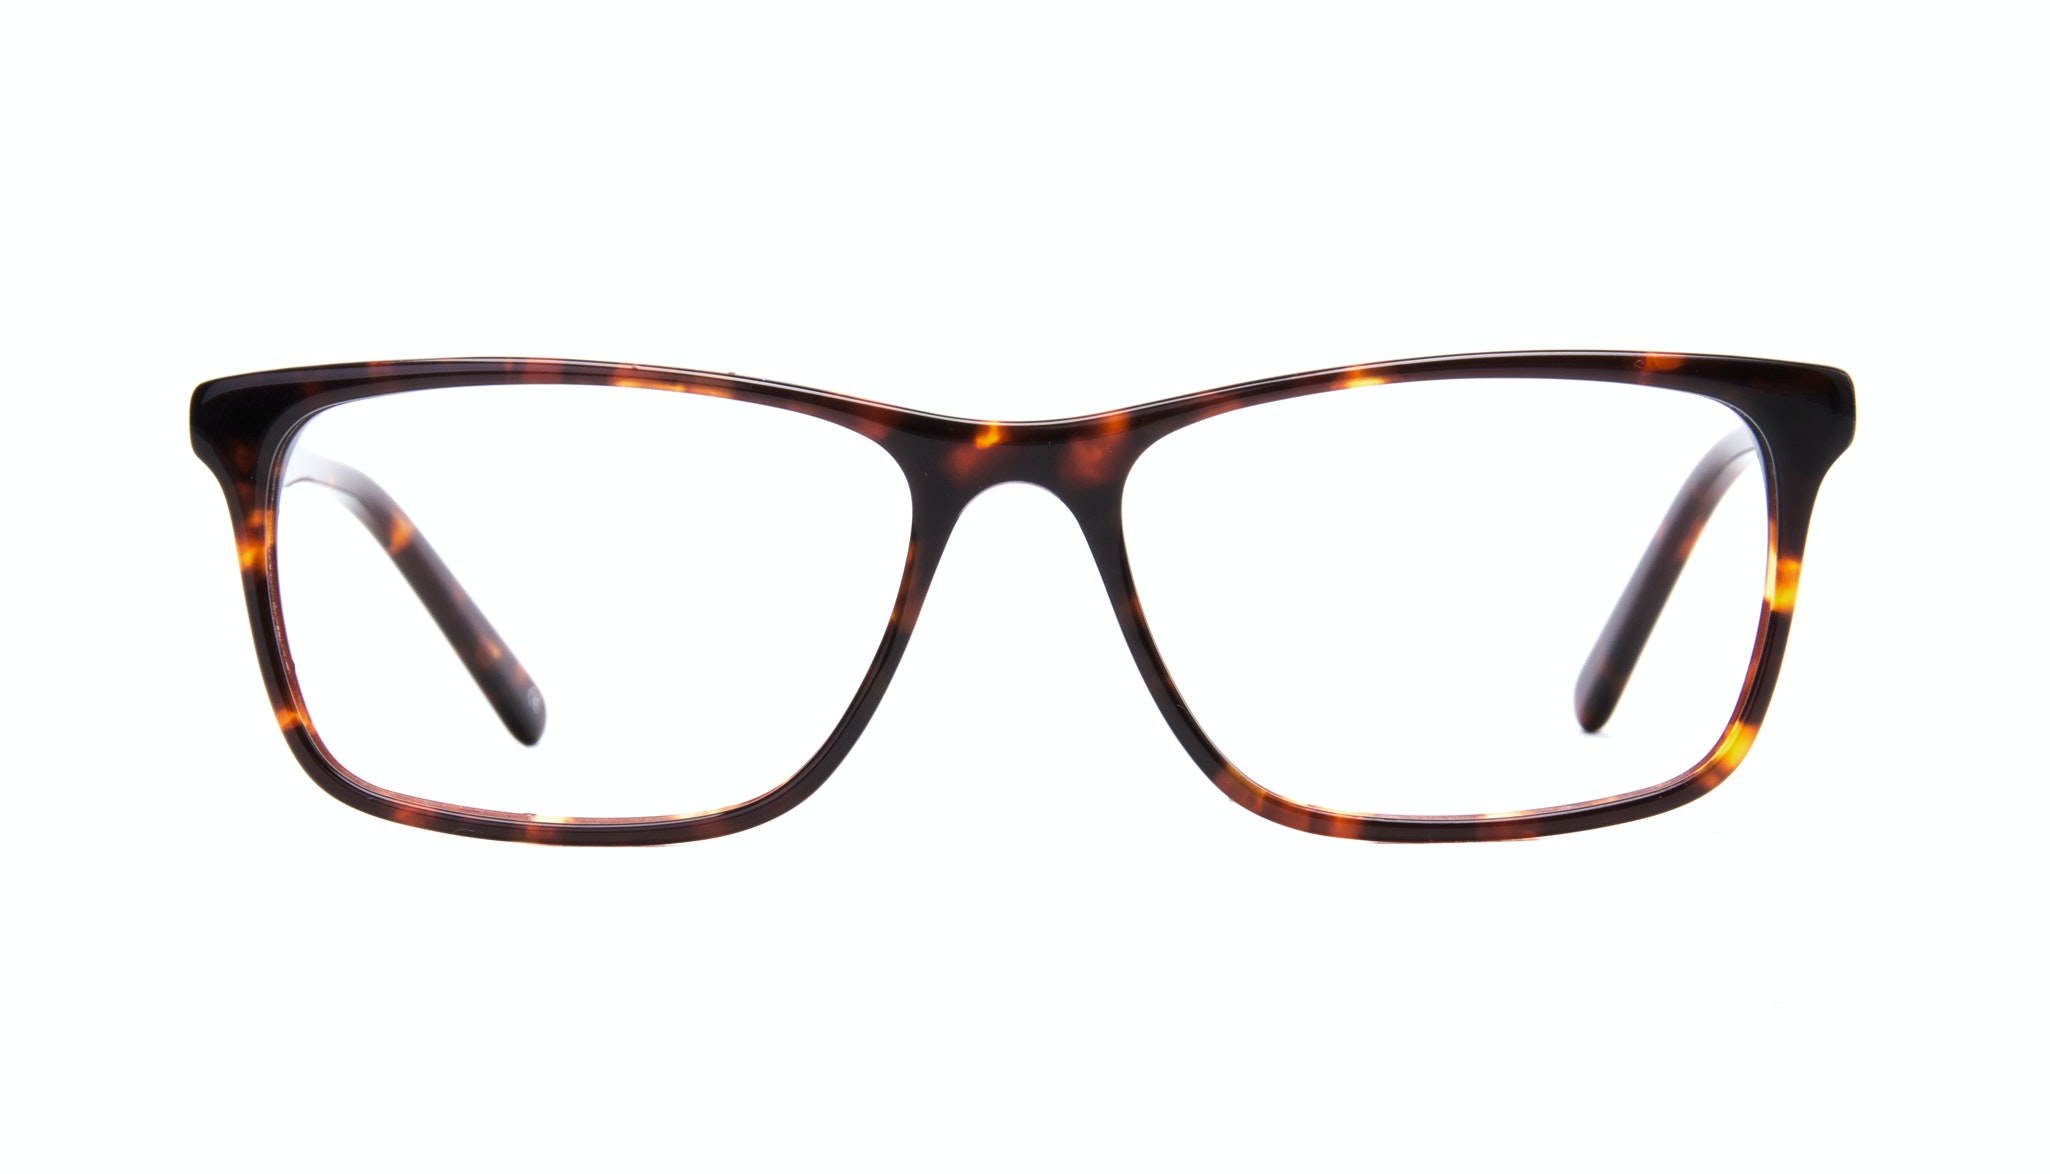 Affordable Fashion Glasses Rectangle Eyeglasses Men Henri Sepia Kiss